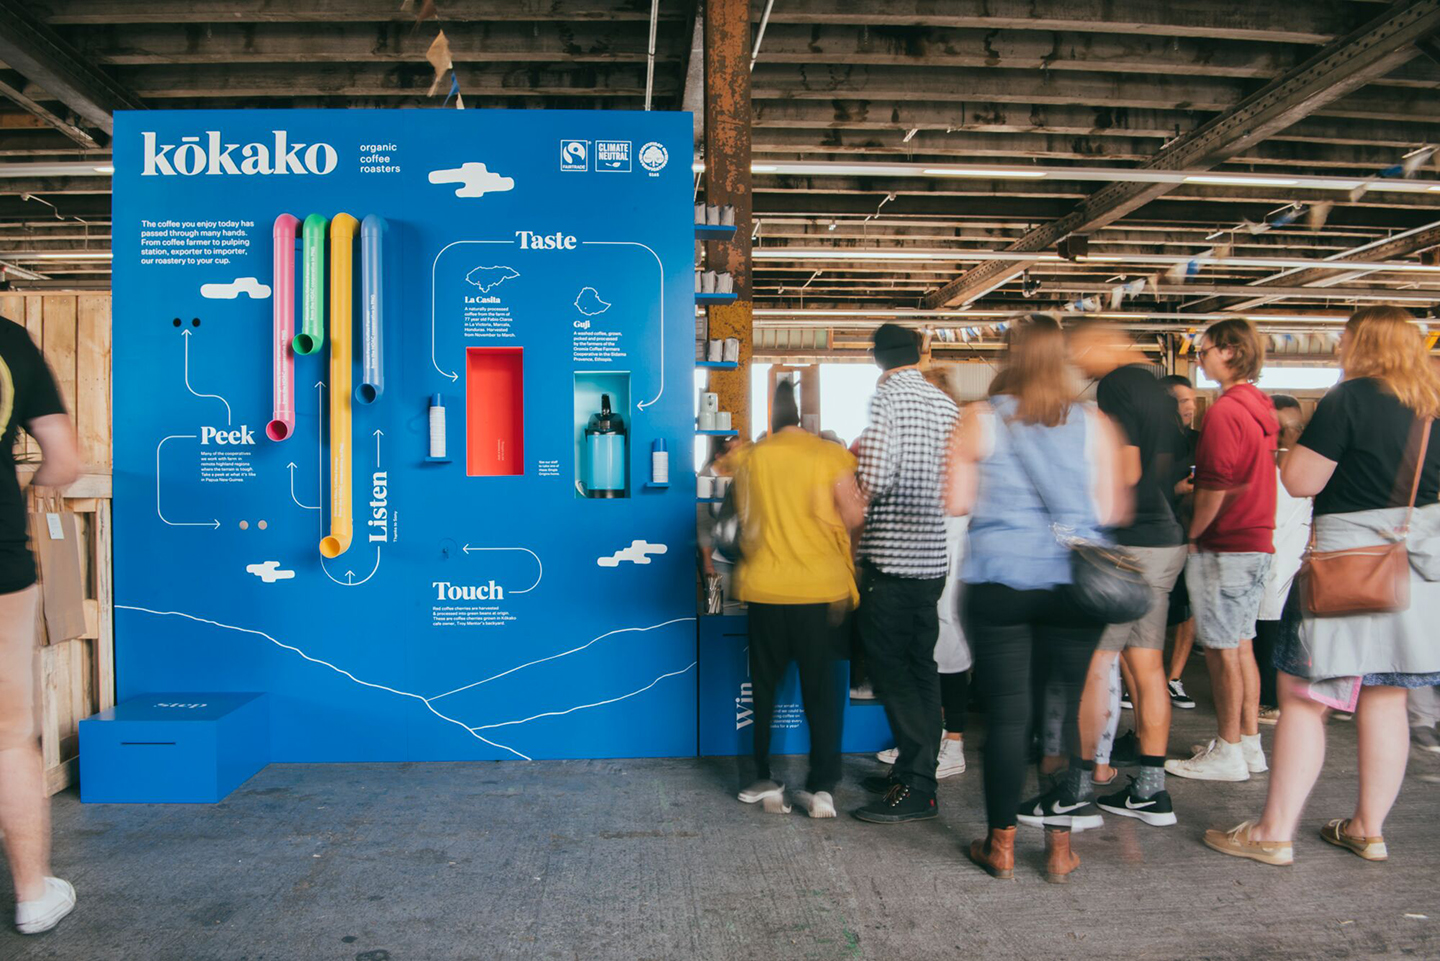 Exhibition Stand Assembly : Fresh from the field — kōkako exhibition stand auckland